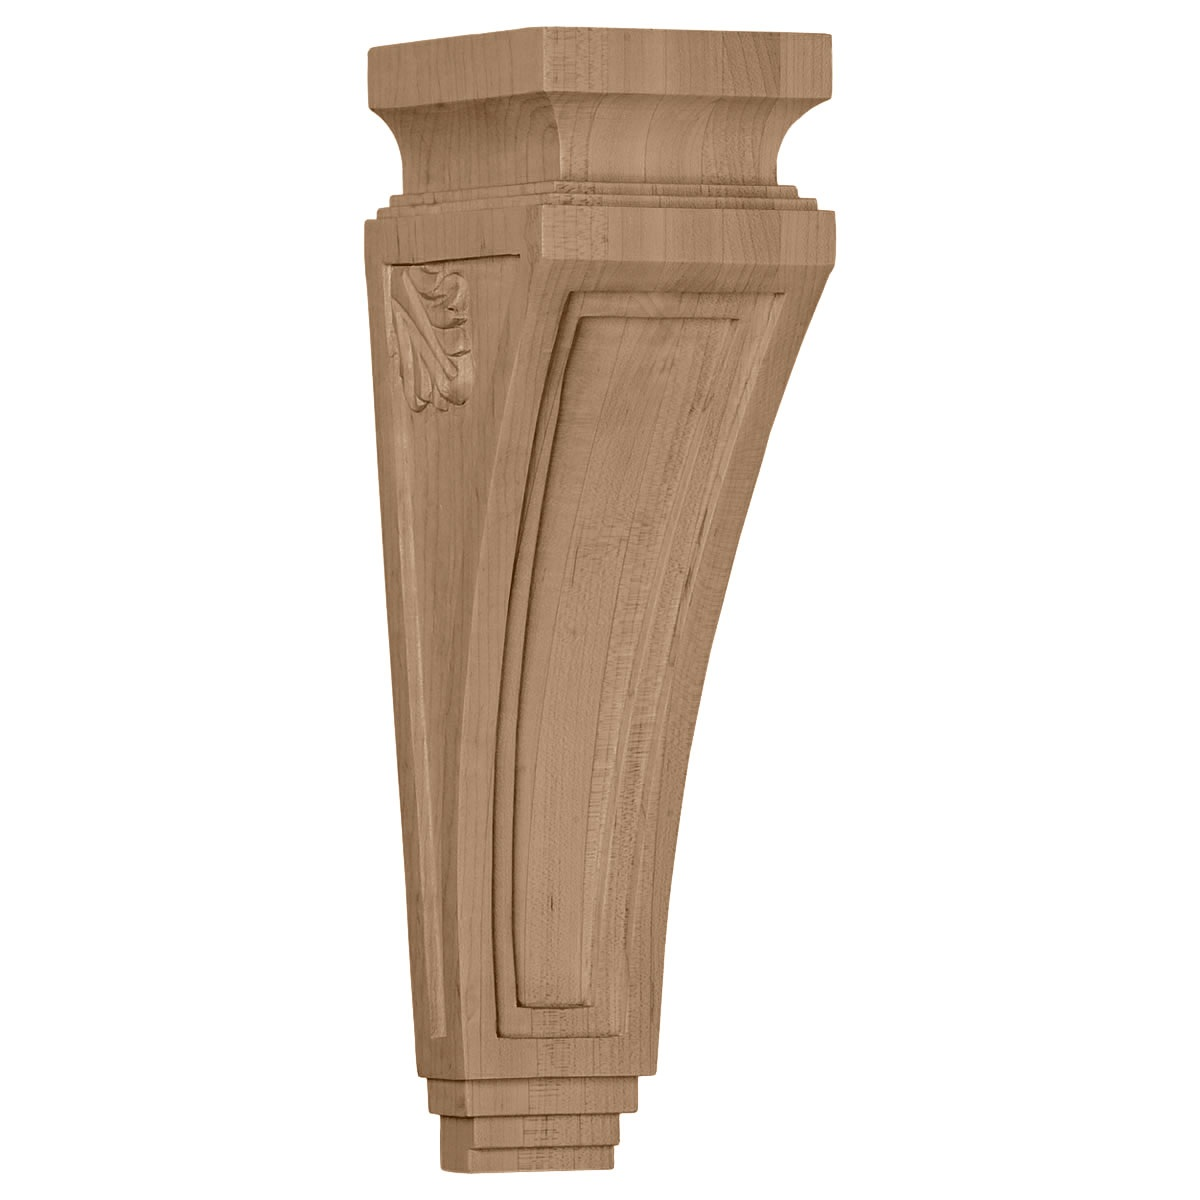 COR03X04X14AR Extra Small Arts and Crafts Corbel